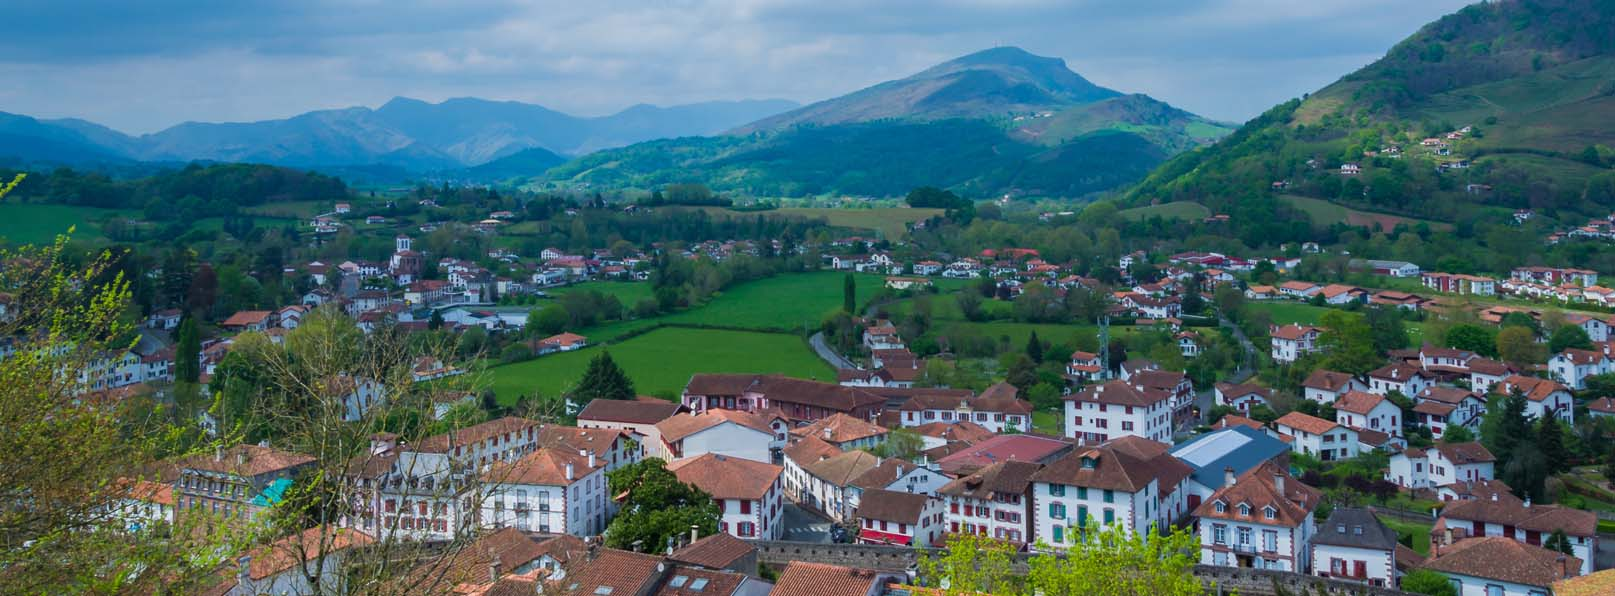 11 Day Highlights of the Camino de Santiago walk from France to Spain